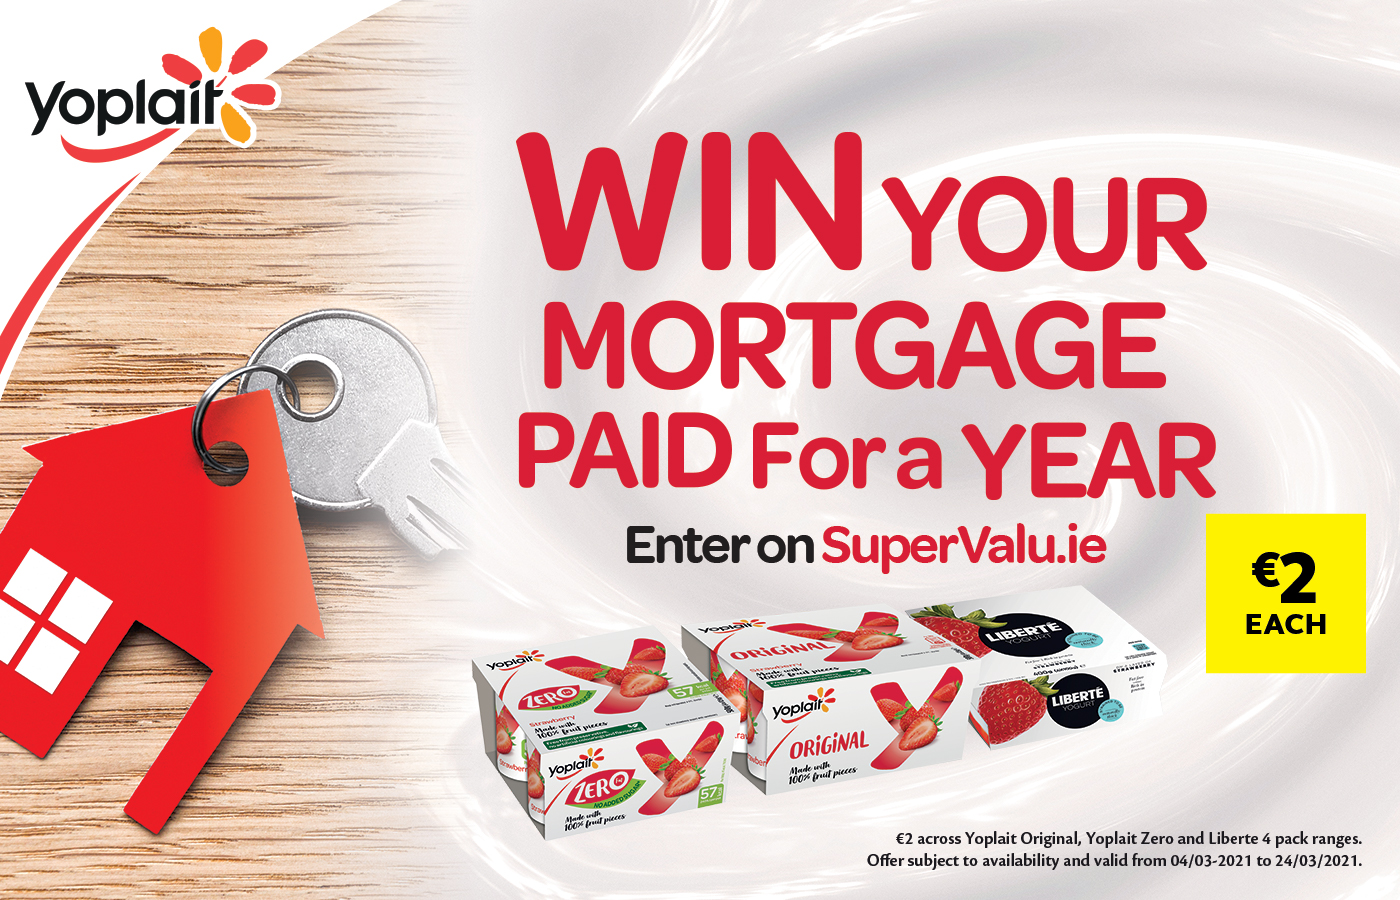 Win your Mortgage paid for an entire year with Yoplait